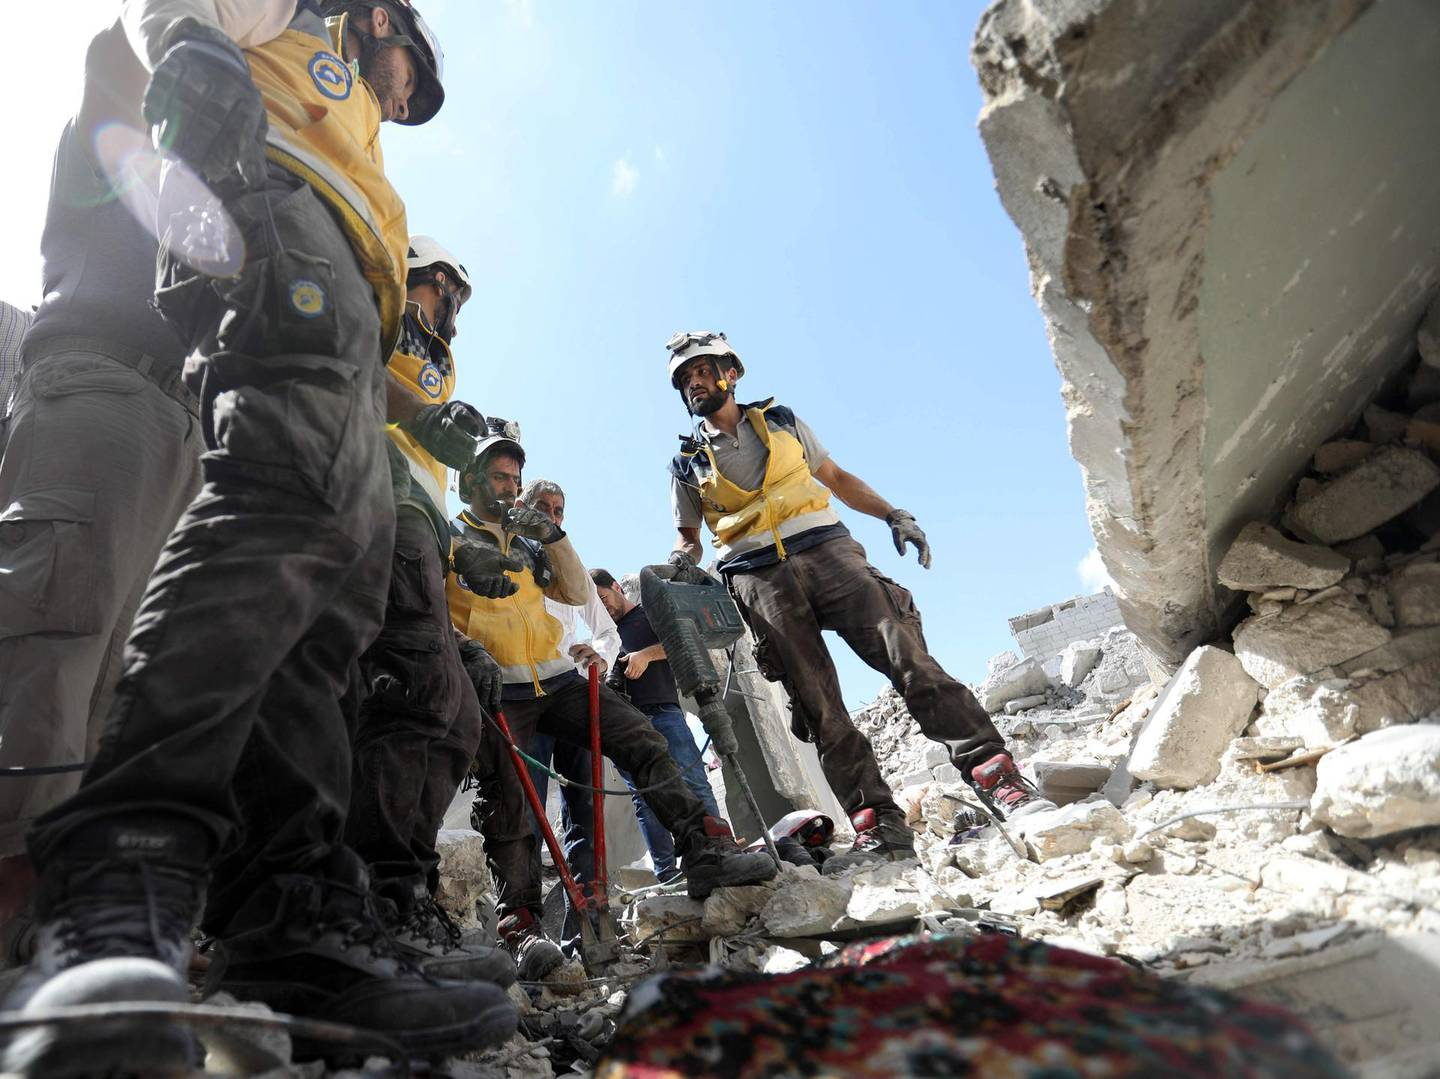 EDITORS NOTE: Graphic content / Members of the Syrian Civil Defence (White Helmets) uncover the body of a man killed in a collapsed building following a reported regime air strike on the town of Ariha, in the south of Syria's Idlib province, on July 12, 2019. At least a dozen civilians were killed in Syrian regime air strikes in the country's northwest, including three children, a war monitor said on July 12. / AFP / Omar HAJ KADOUR